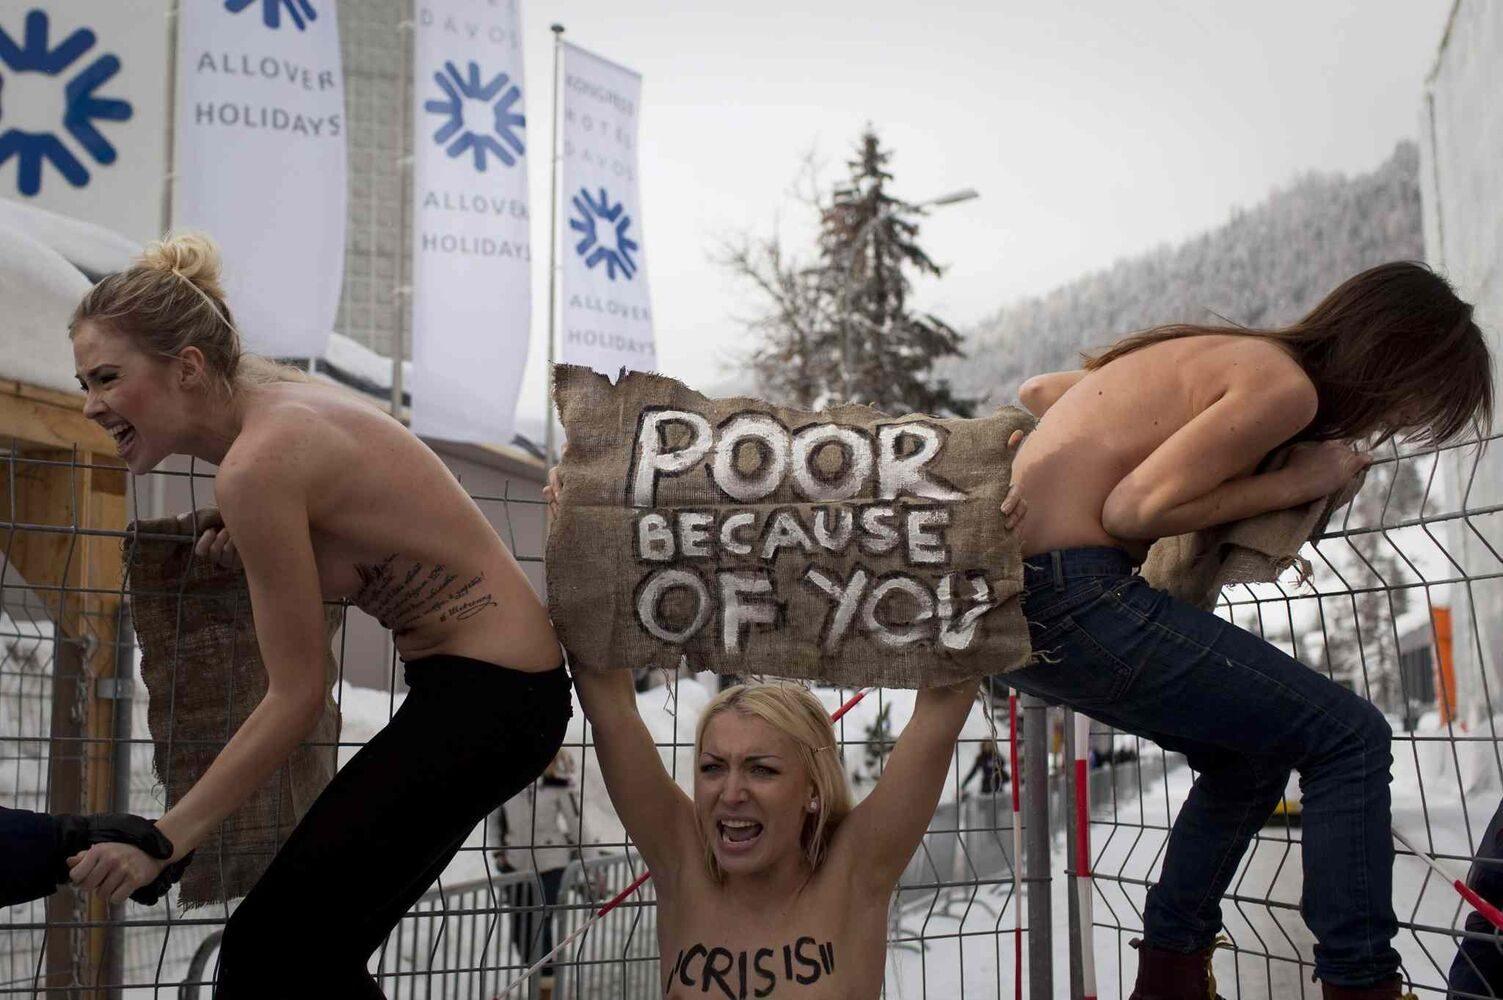 Jan. 28, 2012: Topless Ukrainian protesters climb up a fence at the entrance to the congress center where the World Economic Forum takes place in Davos, Switzerland. (Anja Niedringhaus / The Associated Press)